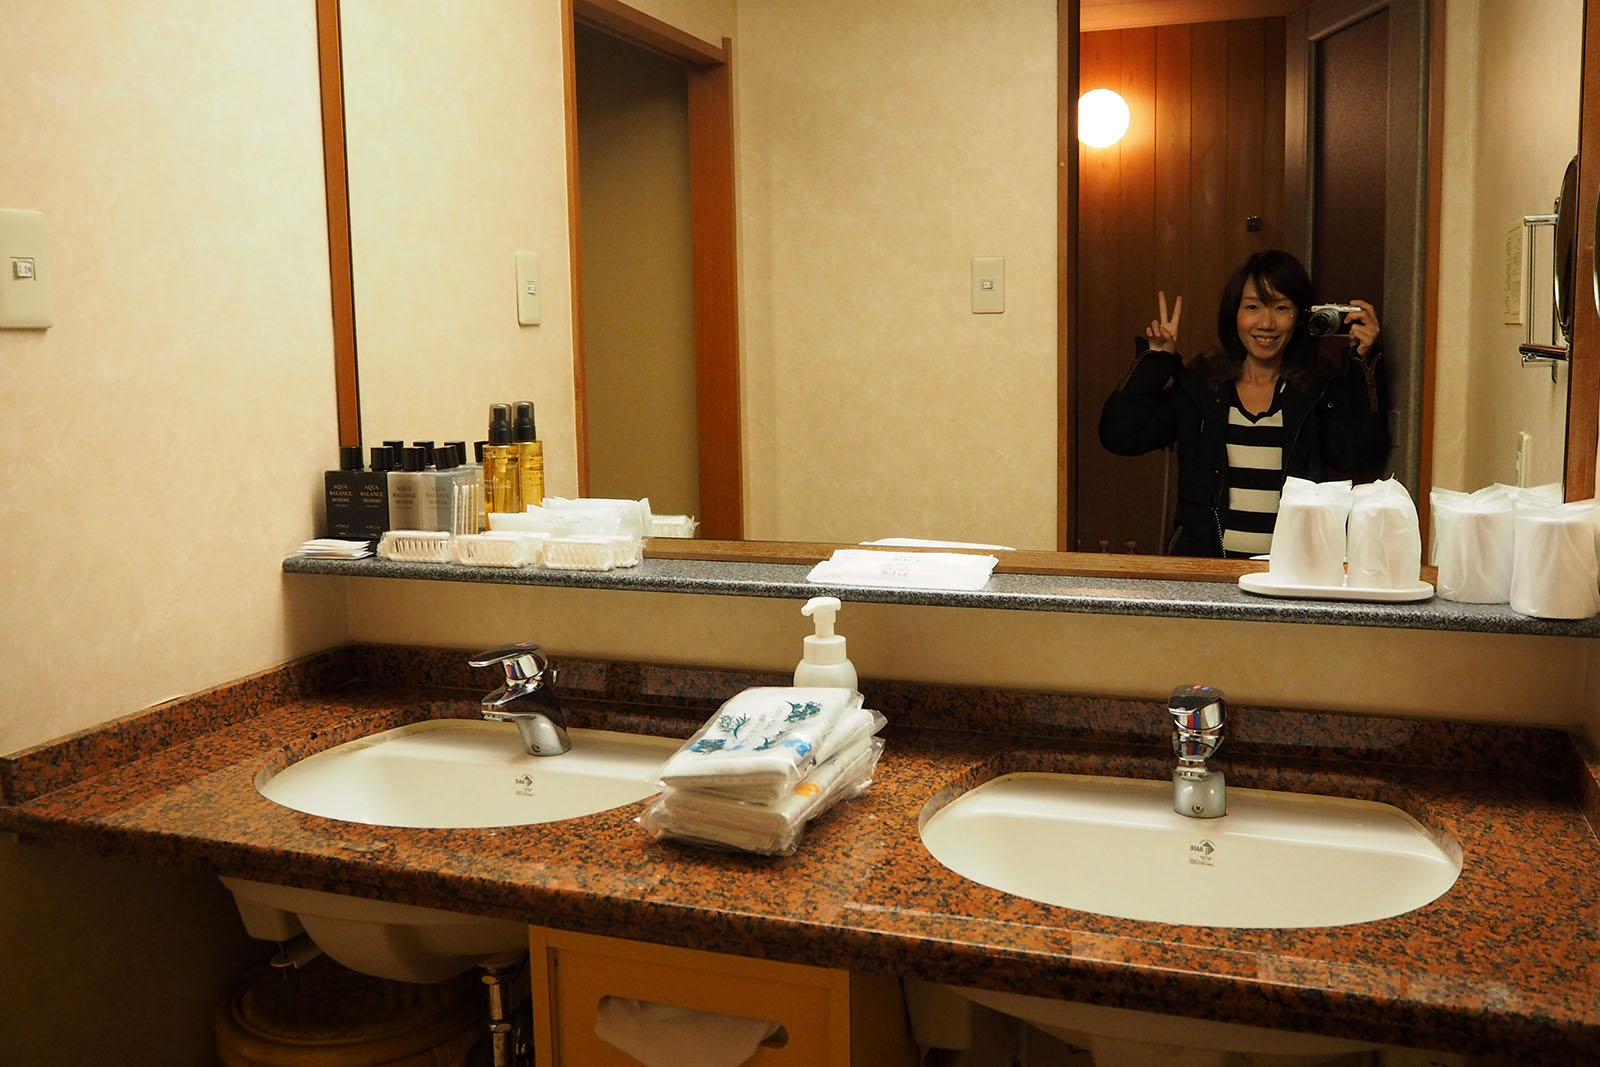 ryokan wash basins | Staying at Yumotokan Onsen Ryokan in Kyoto • The Petite Wanderess